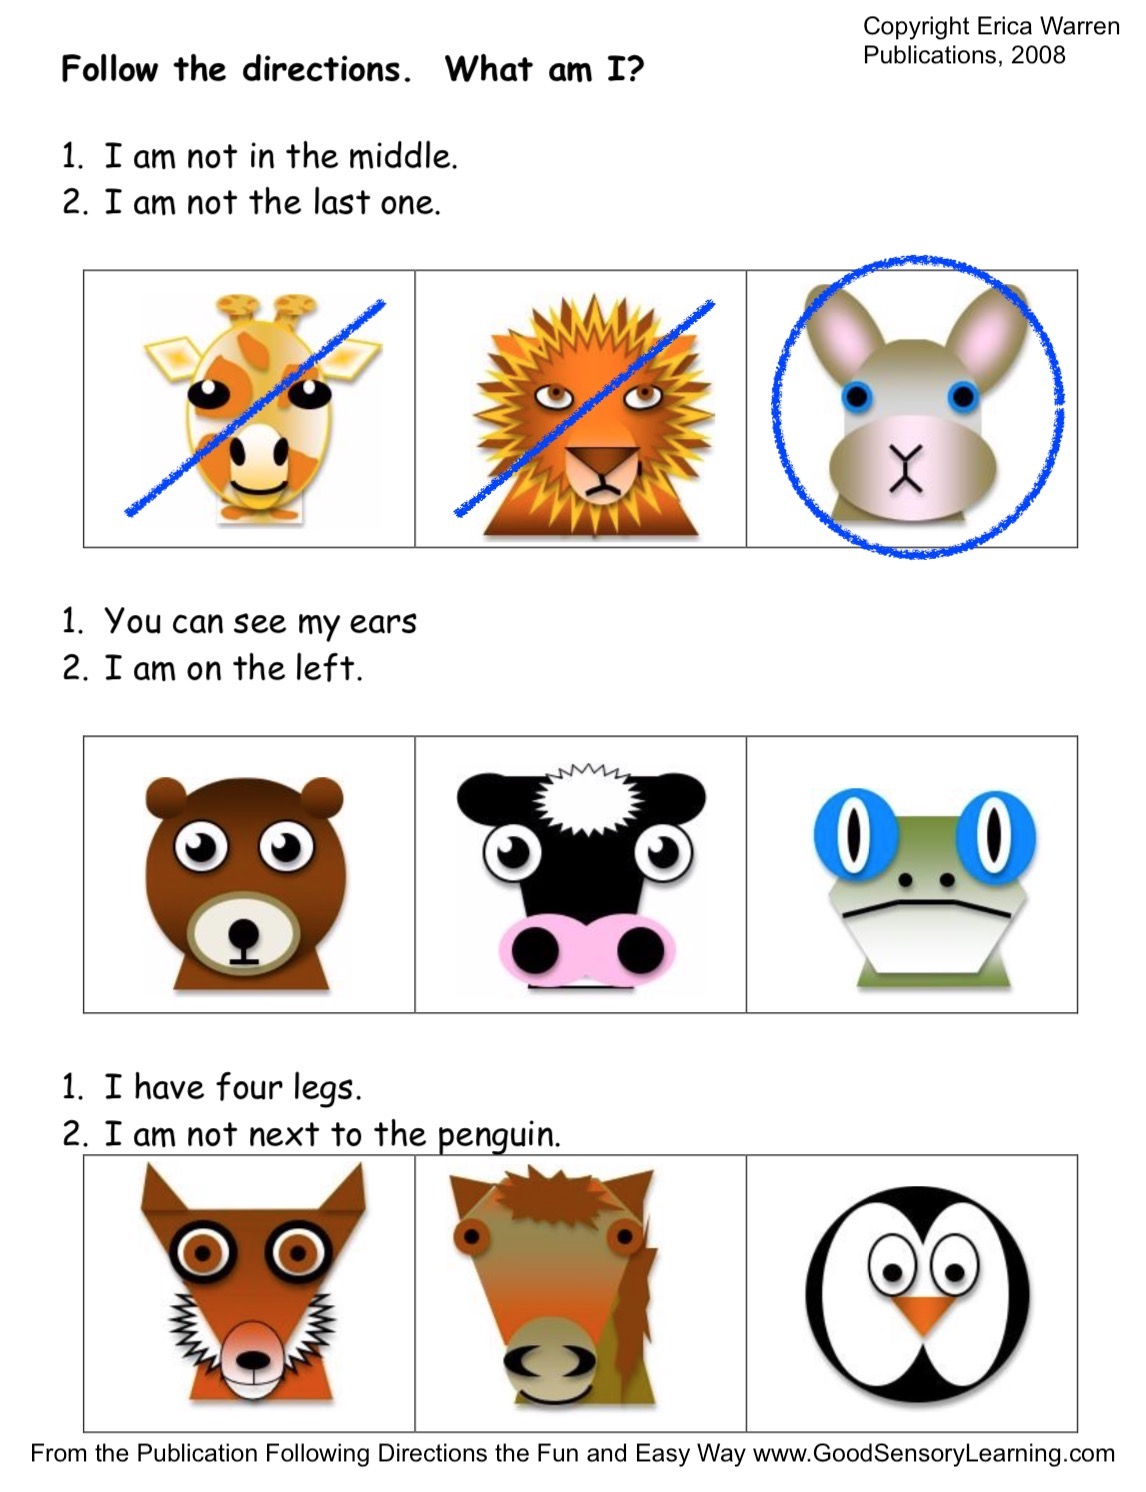 Following directions the Fun and Easy Way Primary